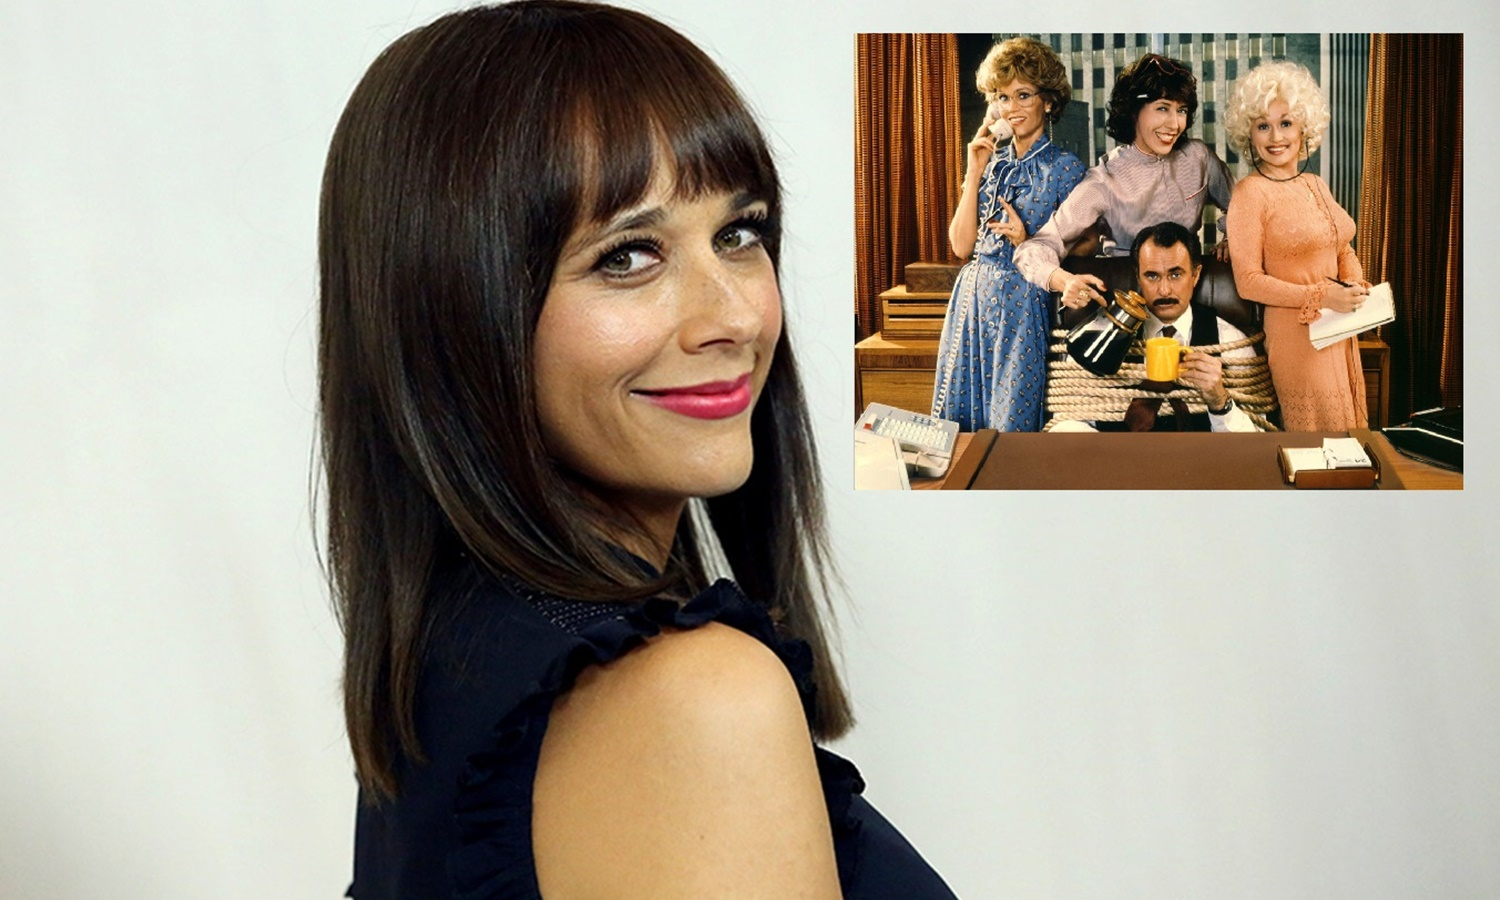 Are Your Ready For a 9 To 5 Remake with Rashida Jones?